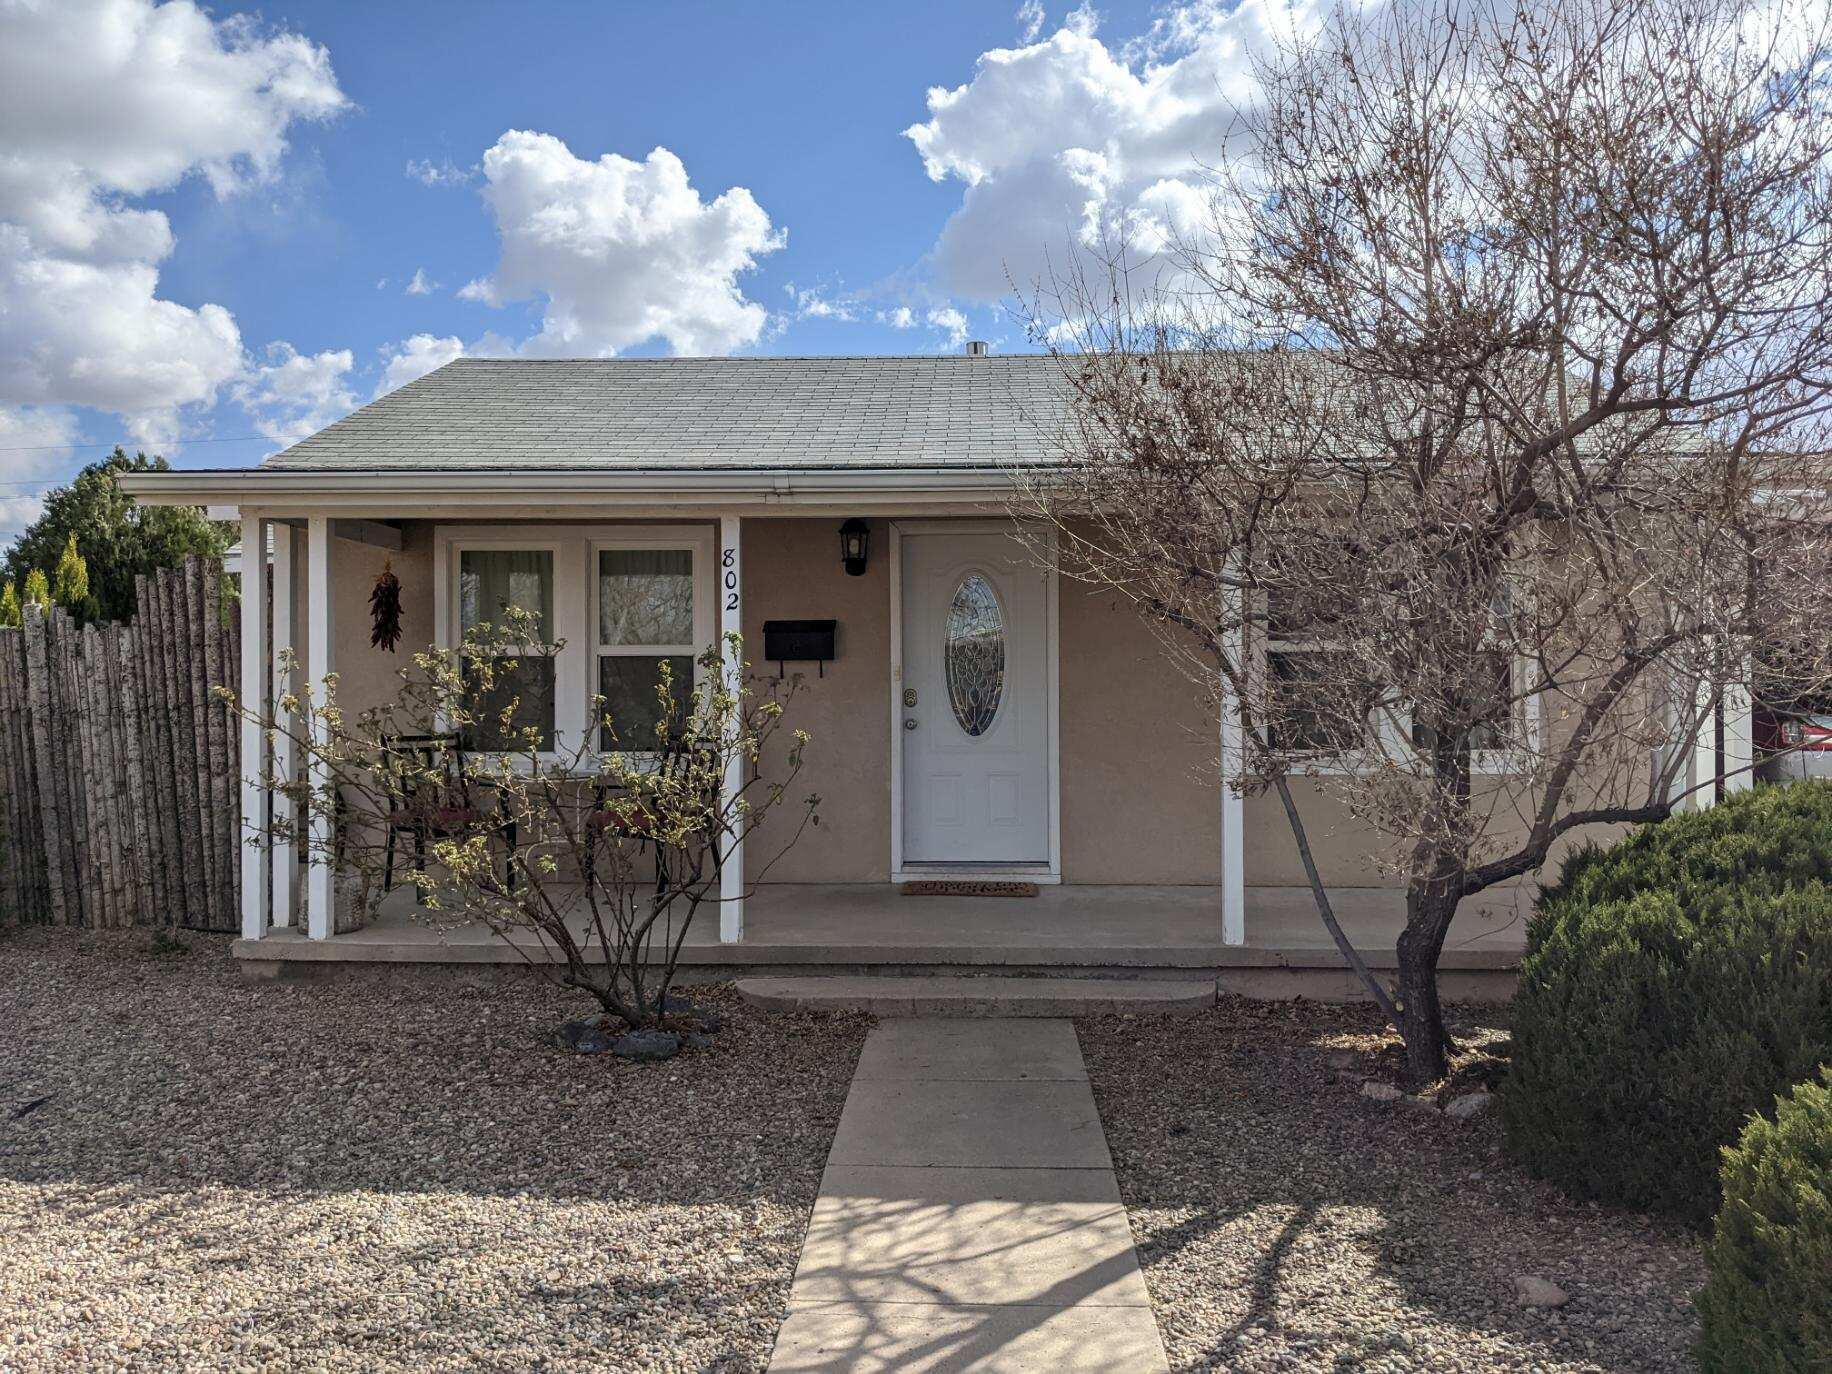 Don't miss your opportunity to make this beautiful North Valley gem your new home.  Located on a corner lot in the North Valley, this charming home won't disappoint.  It has been meticulously cared for and is ready for you to move right in.  The outside space is perfect for enjoying the gorgeous NM weather.  Schedule your showing today, this home wont last long.